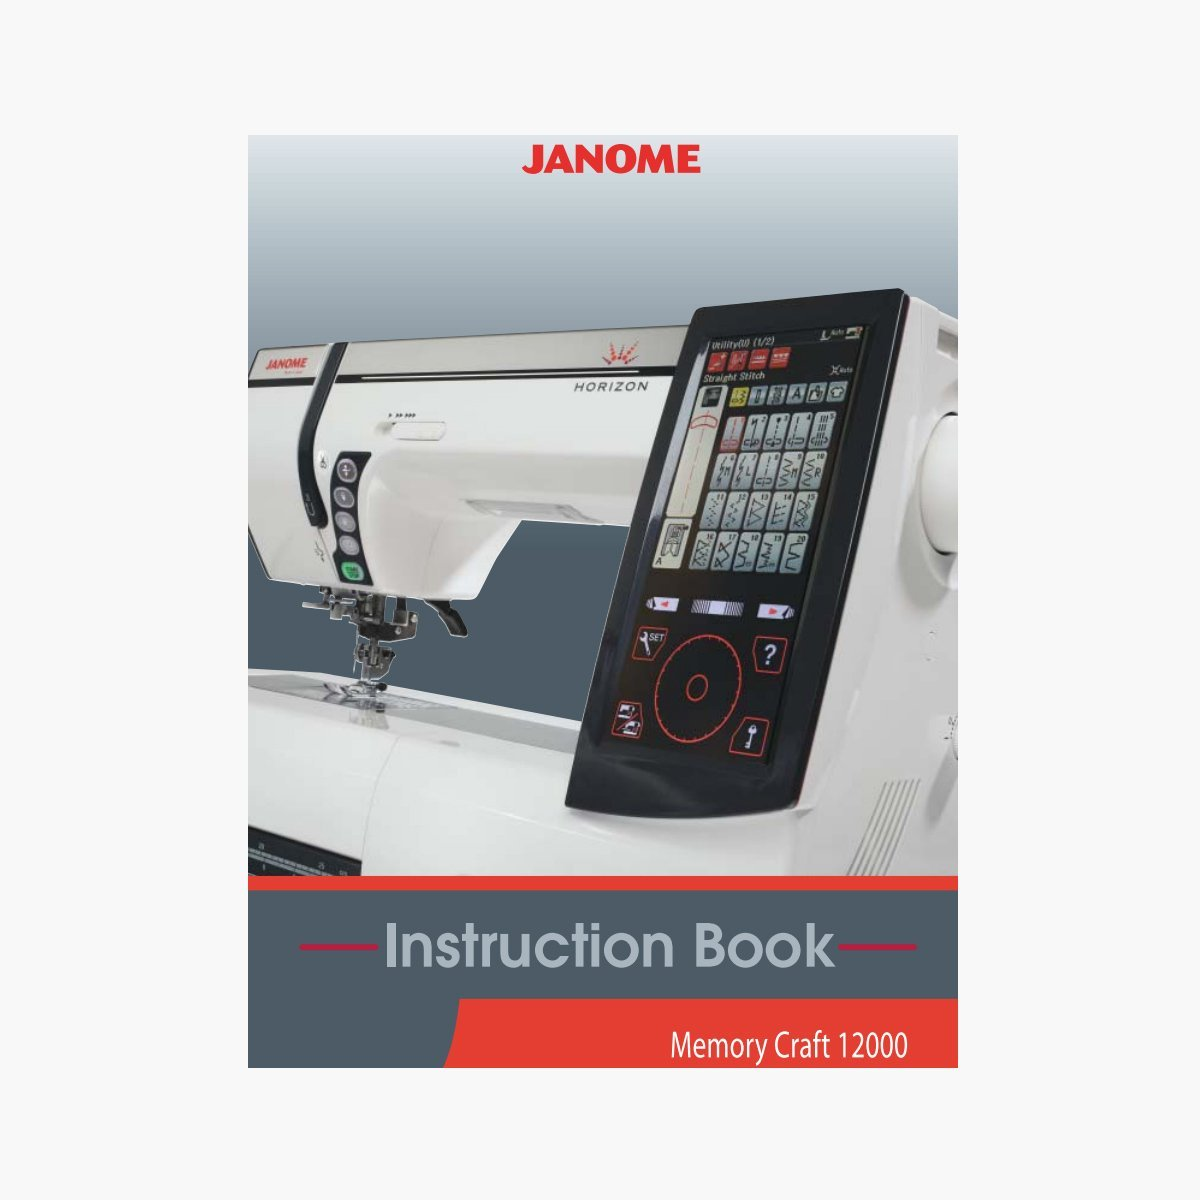 Janome memory craft 12000 - Janome 12000 Review Prev